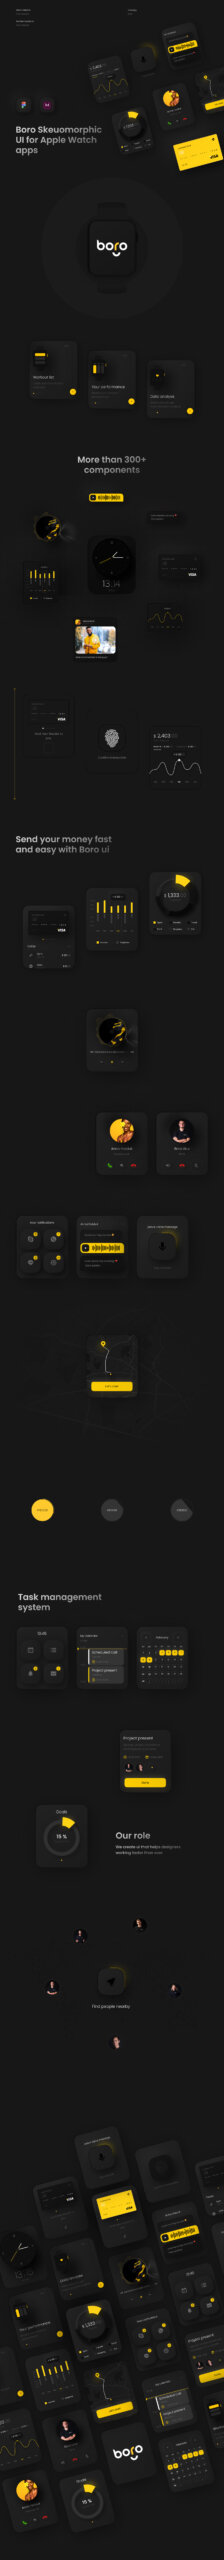 Boro Free UI Kit for Apple Watch Apps from UIGarage